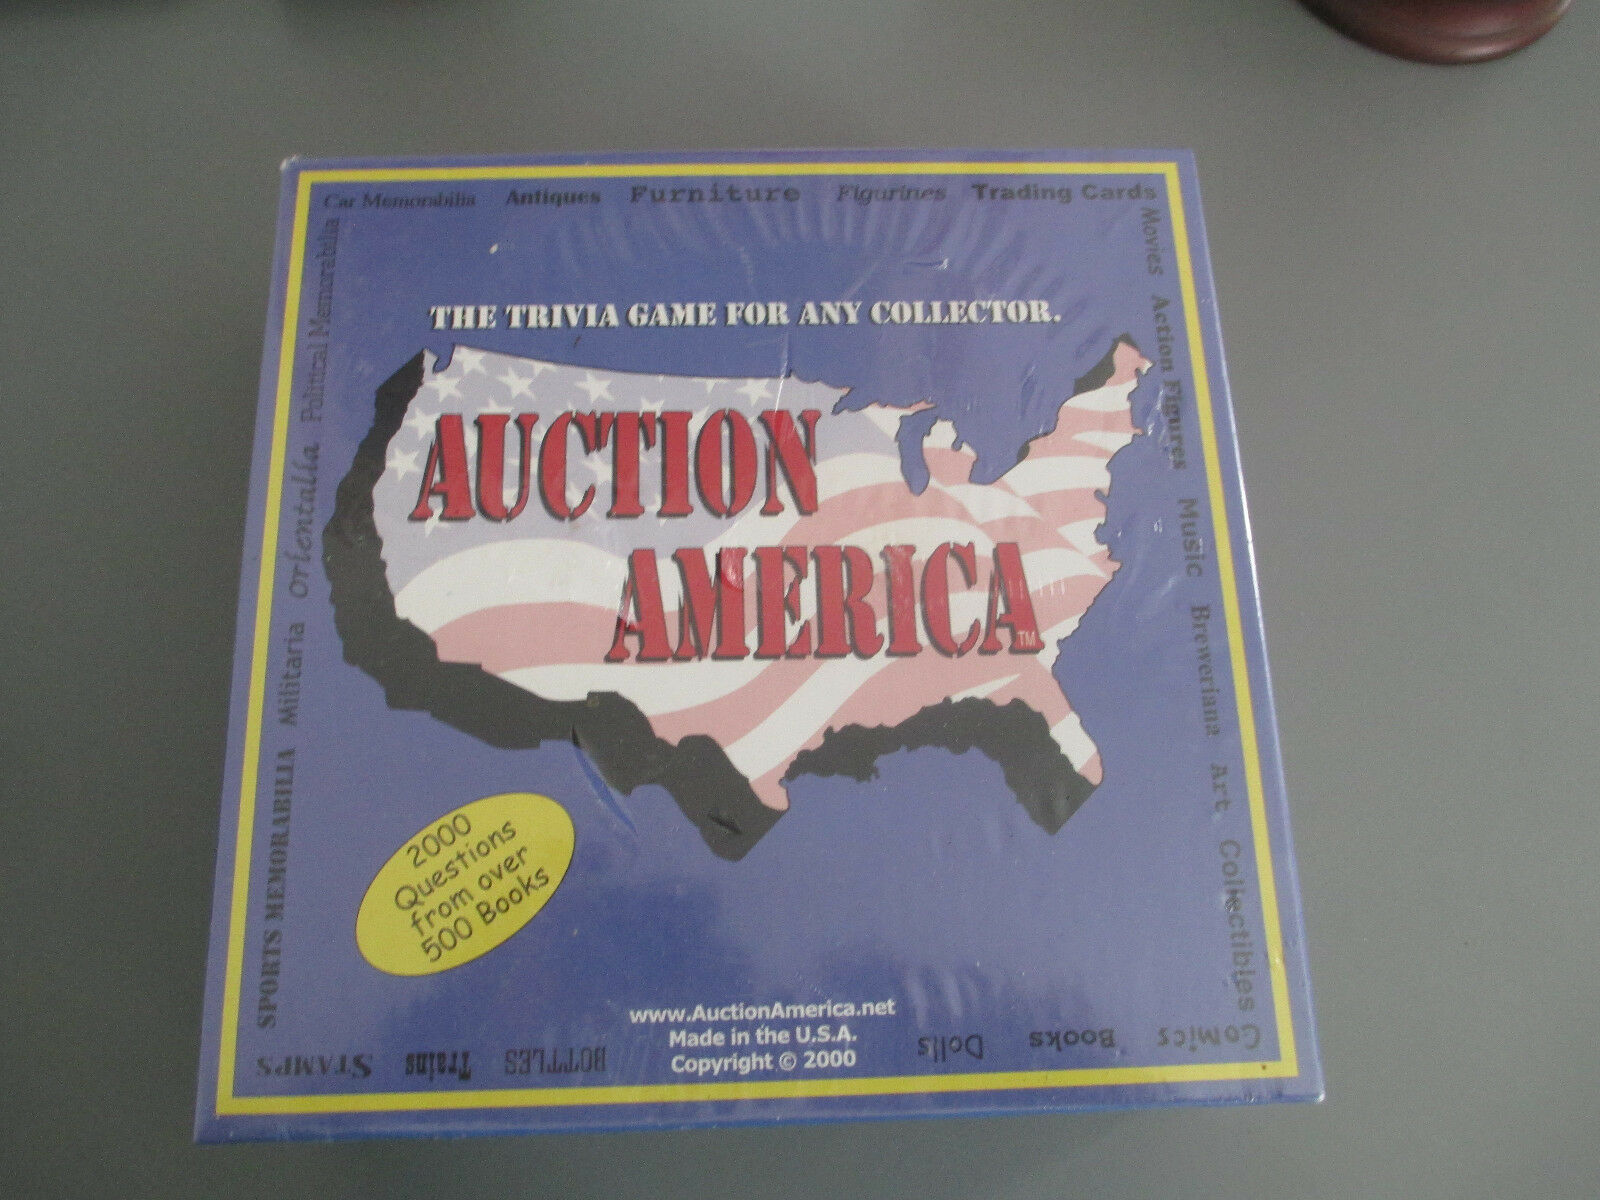 Auction America Trivia Game Game Game Collectors Memorabilia Trivia Game ages 16+ USA Made 7aa6c2